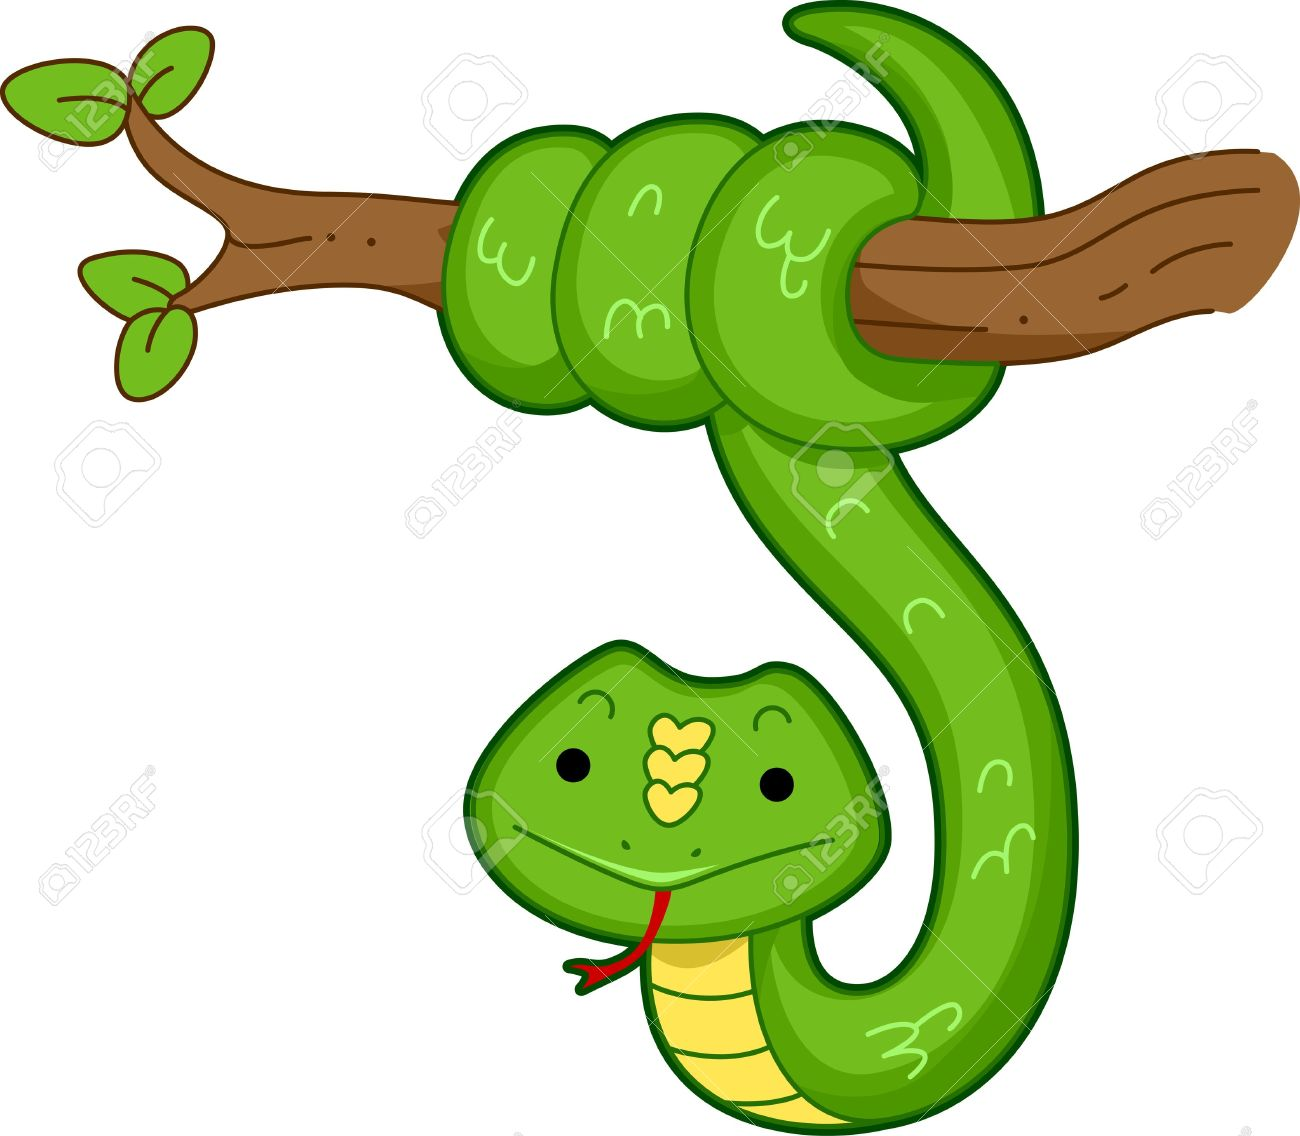 Tree Snake clipart #15, Download drawings